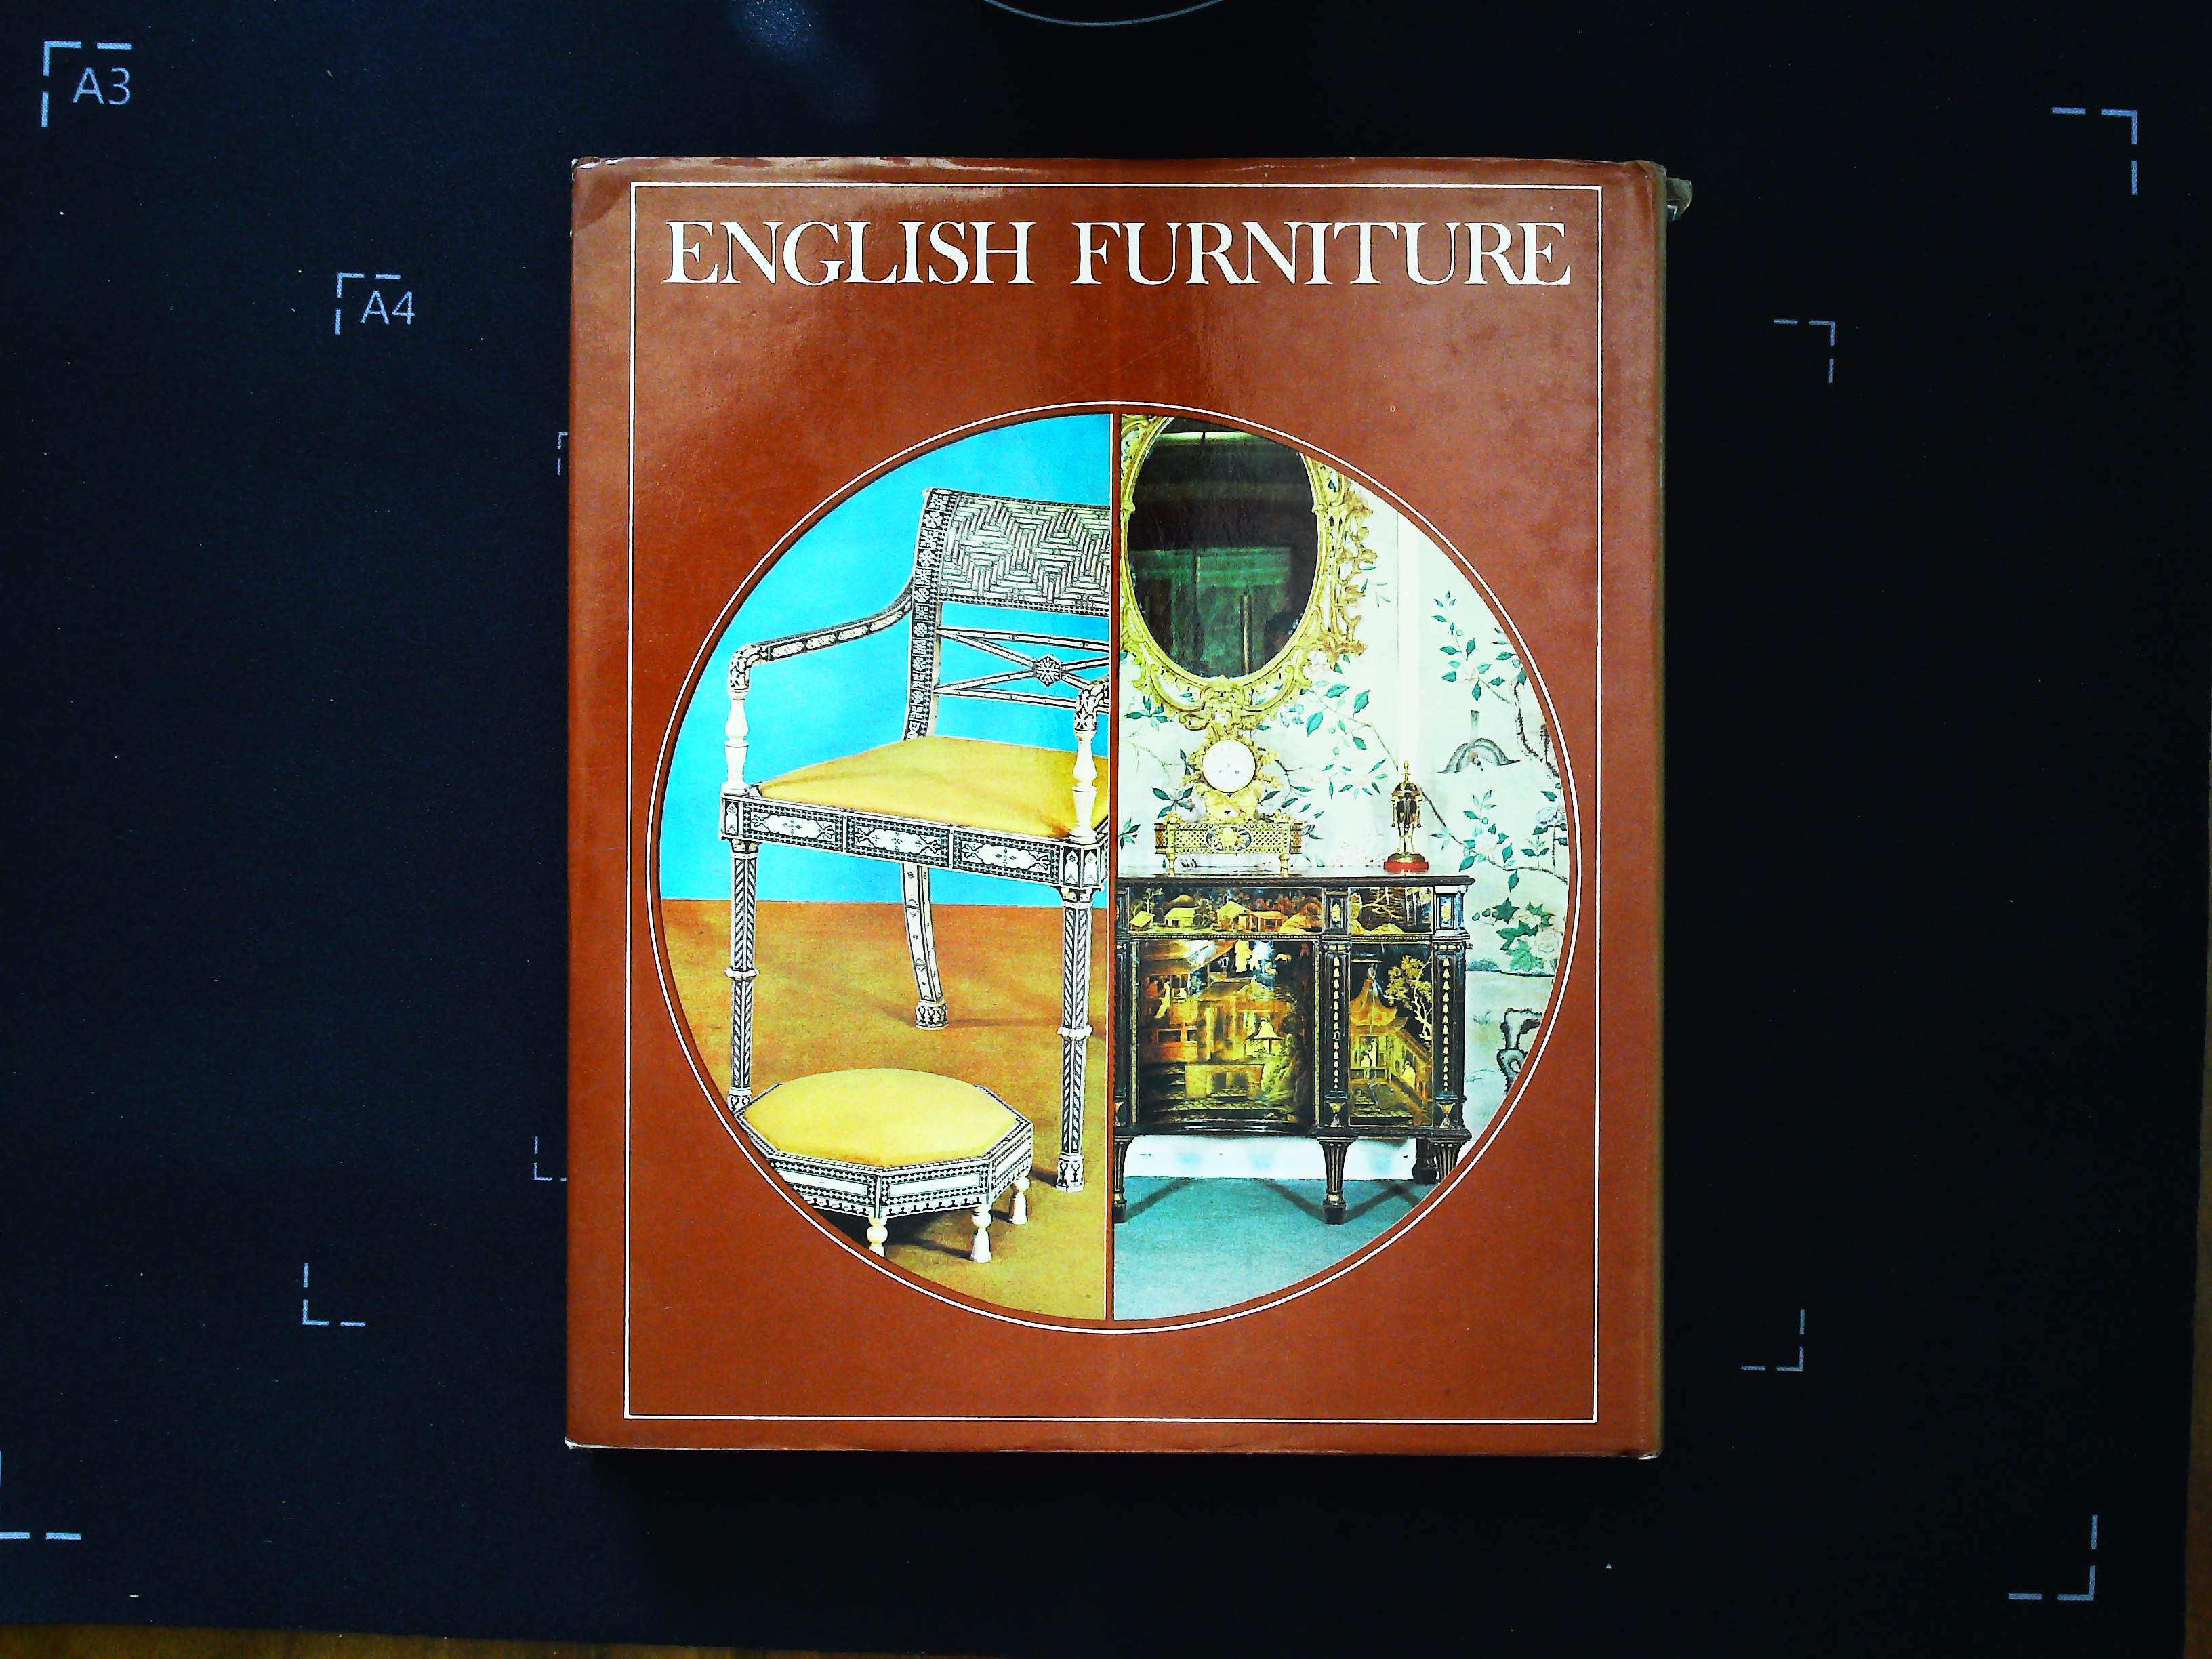 English Furniture by David Nickerson hardback book 96 pages Published 1973 Octopus Books Ltd. In - Image 2 of 3